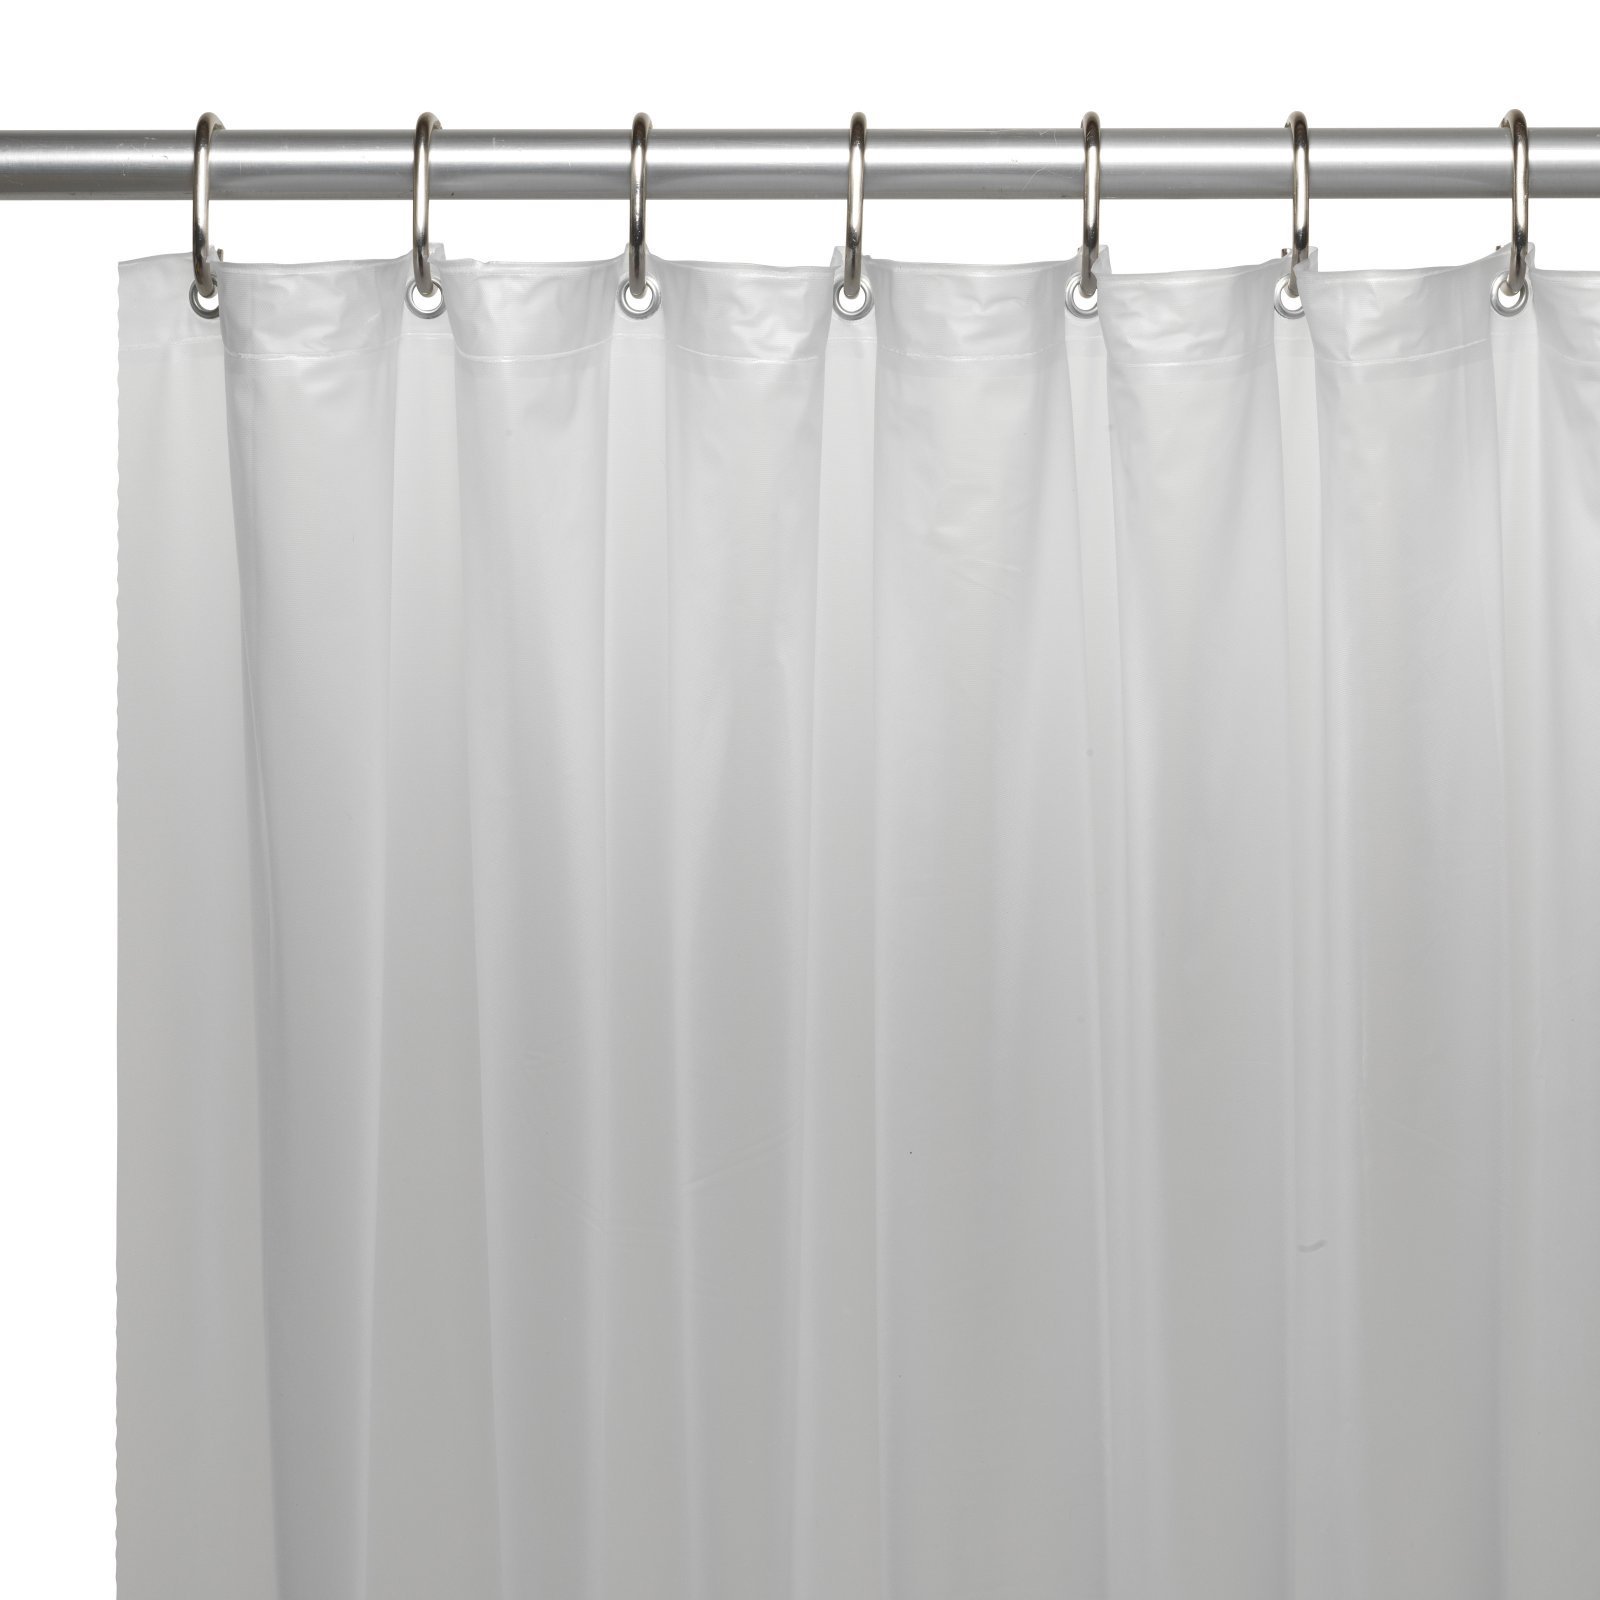 shower stall sized 54 x 78 mildew resistant 10 gauge vinyl shower curtain liner w metal grommets and reinforced mesh header in frosty clear